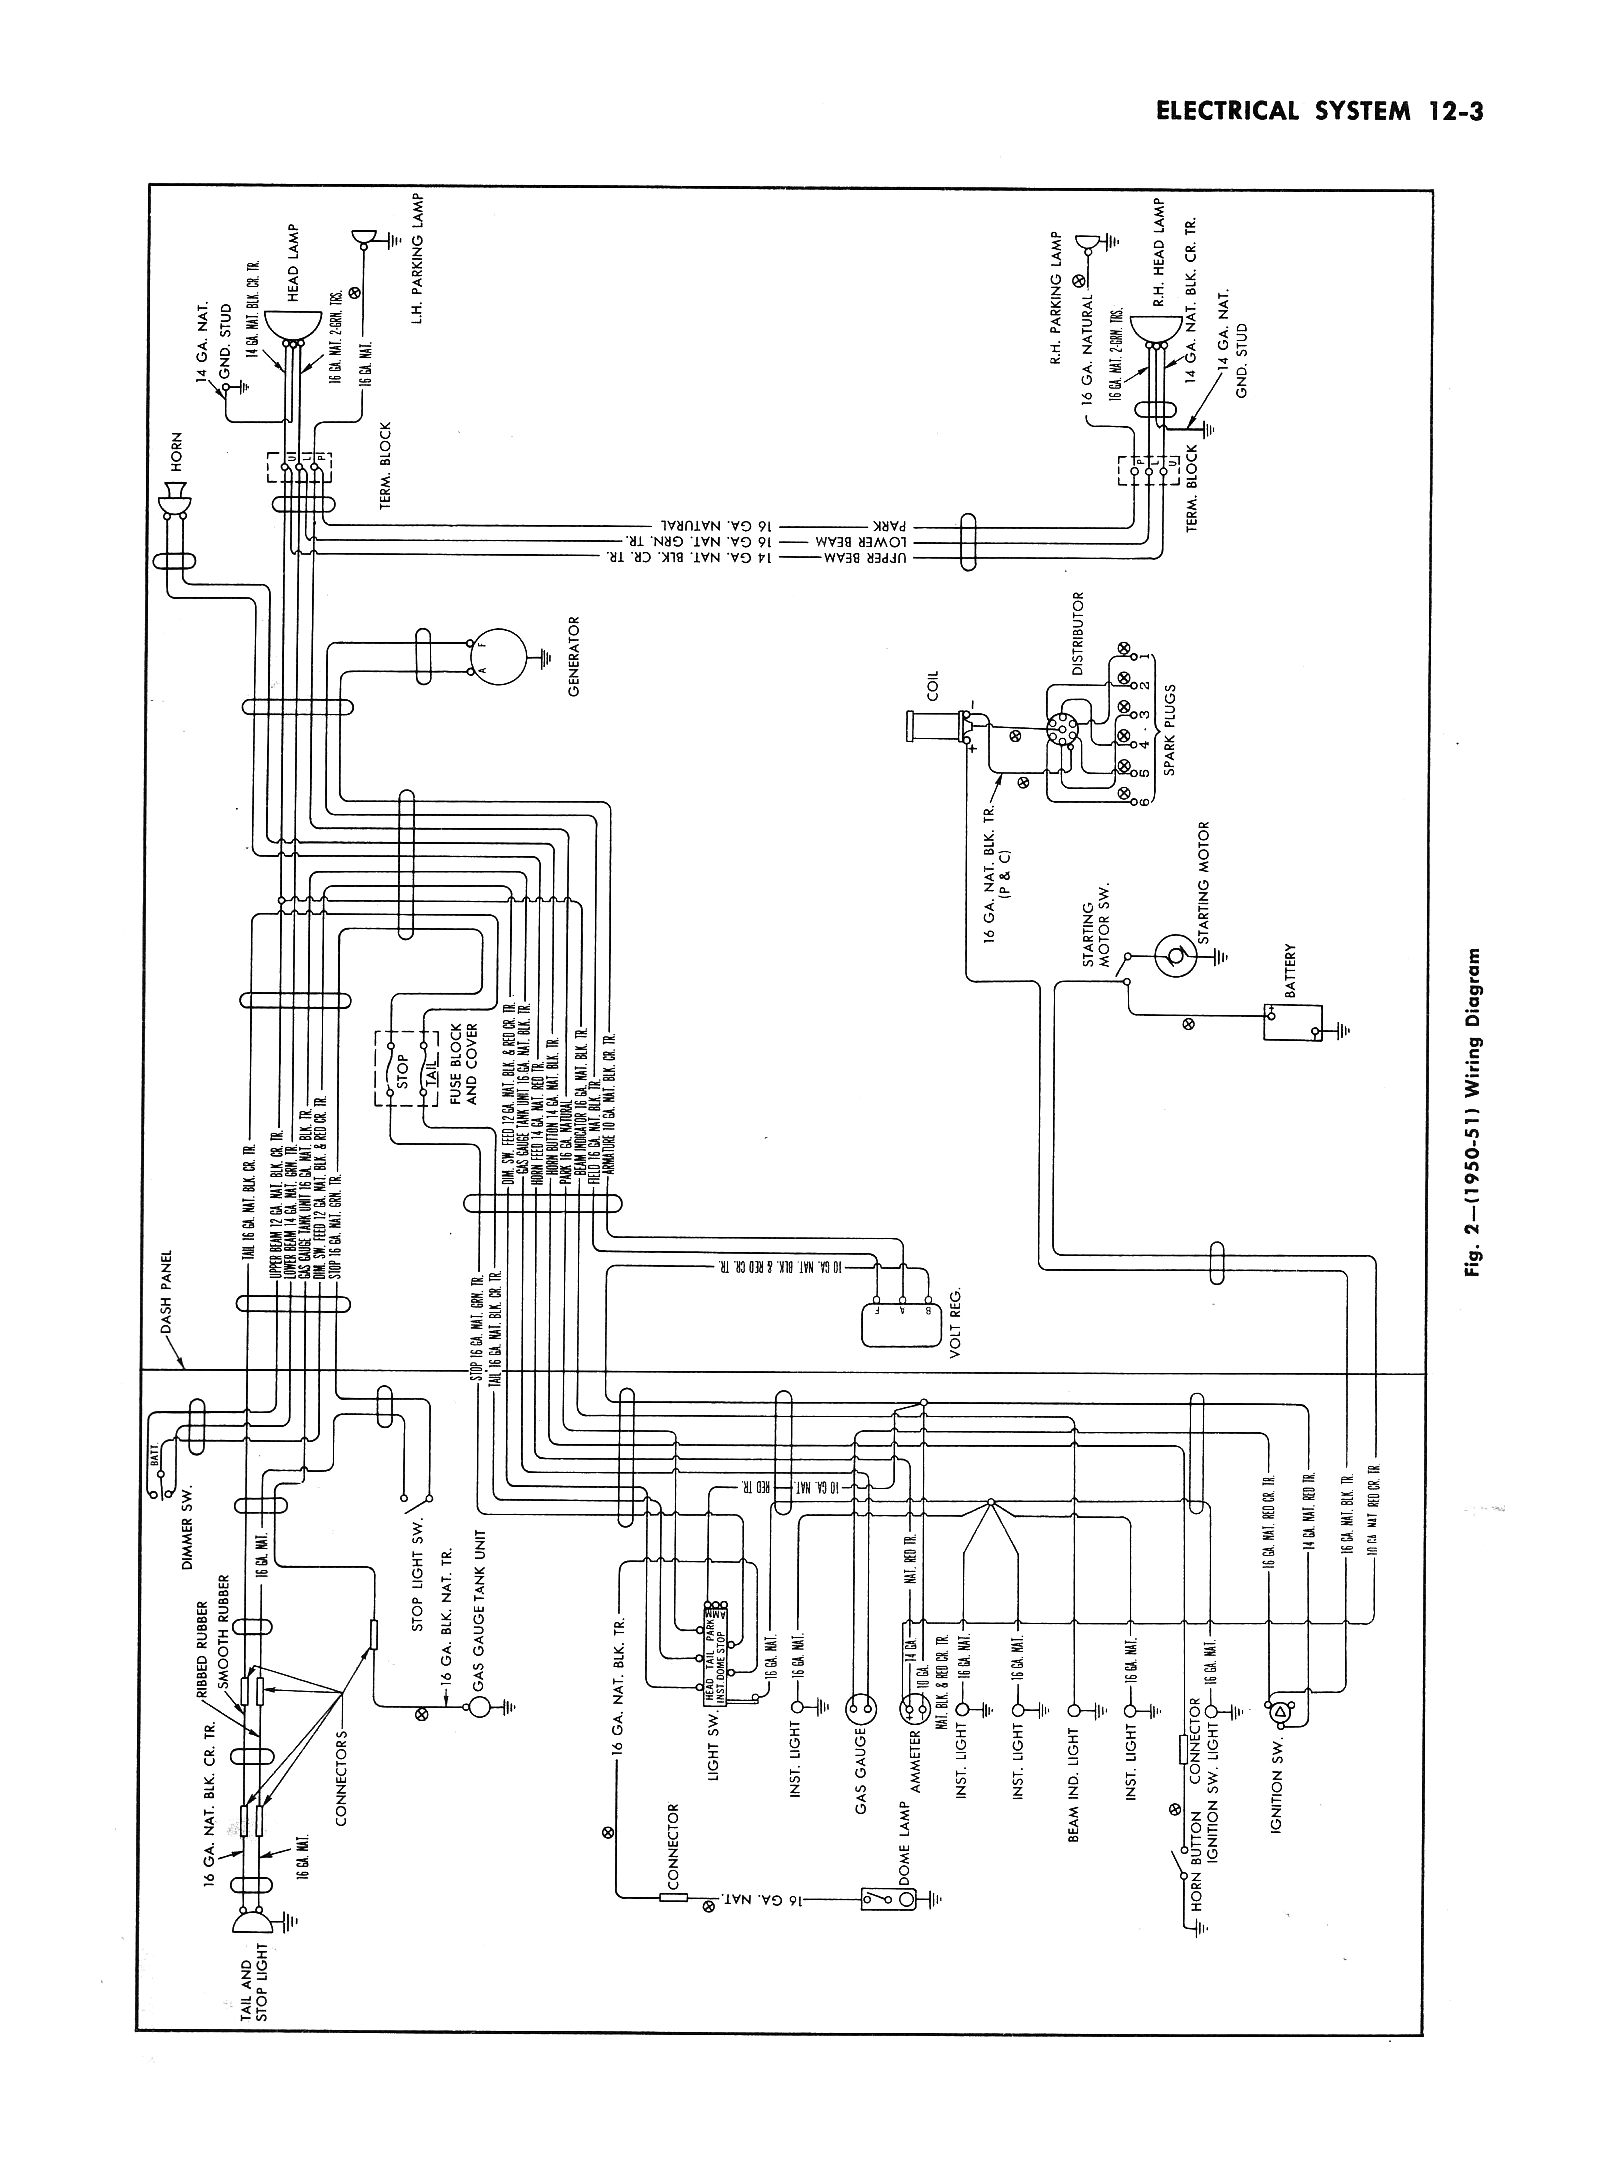 chevrolet chevy 1942 truck wiring electrical diagram manual